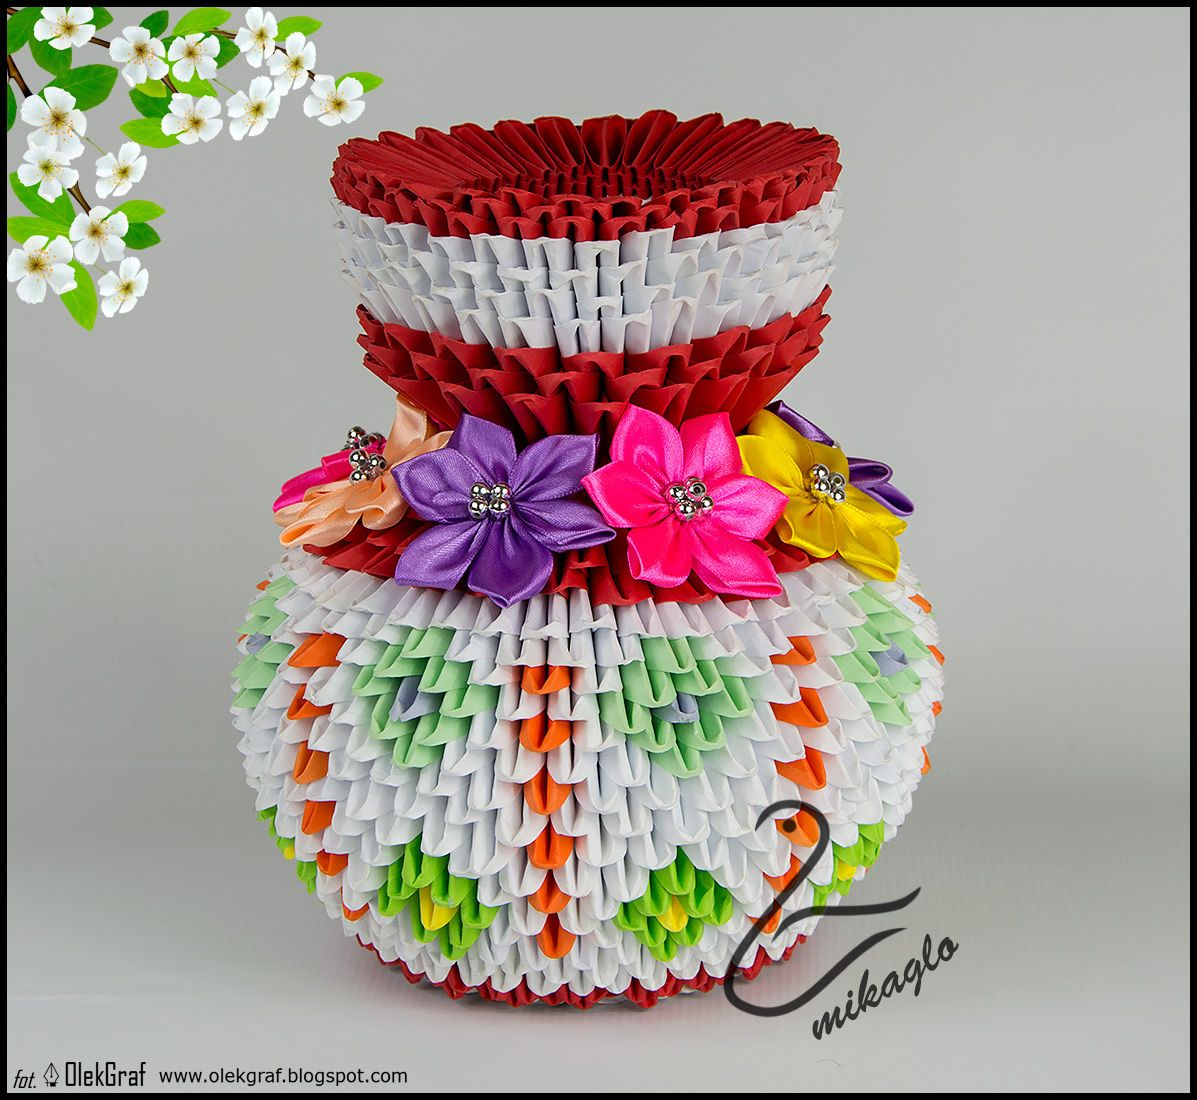 origami 3d flower vase tutorial: mikaglo.blogspot.com | 3d ... - photo#27